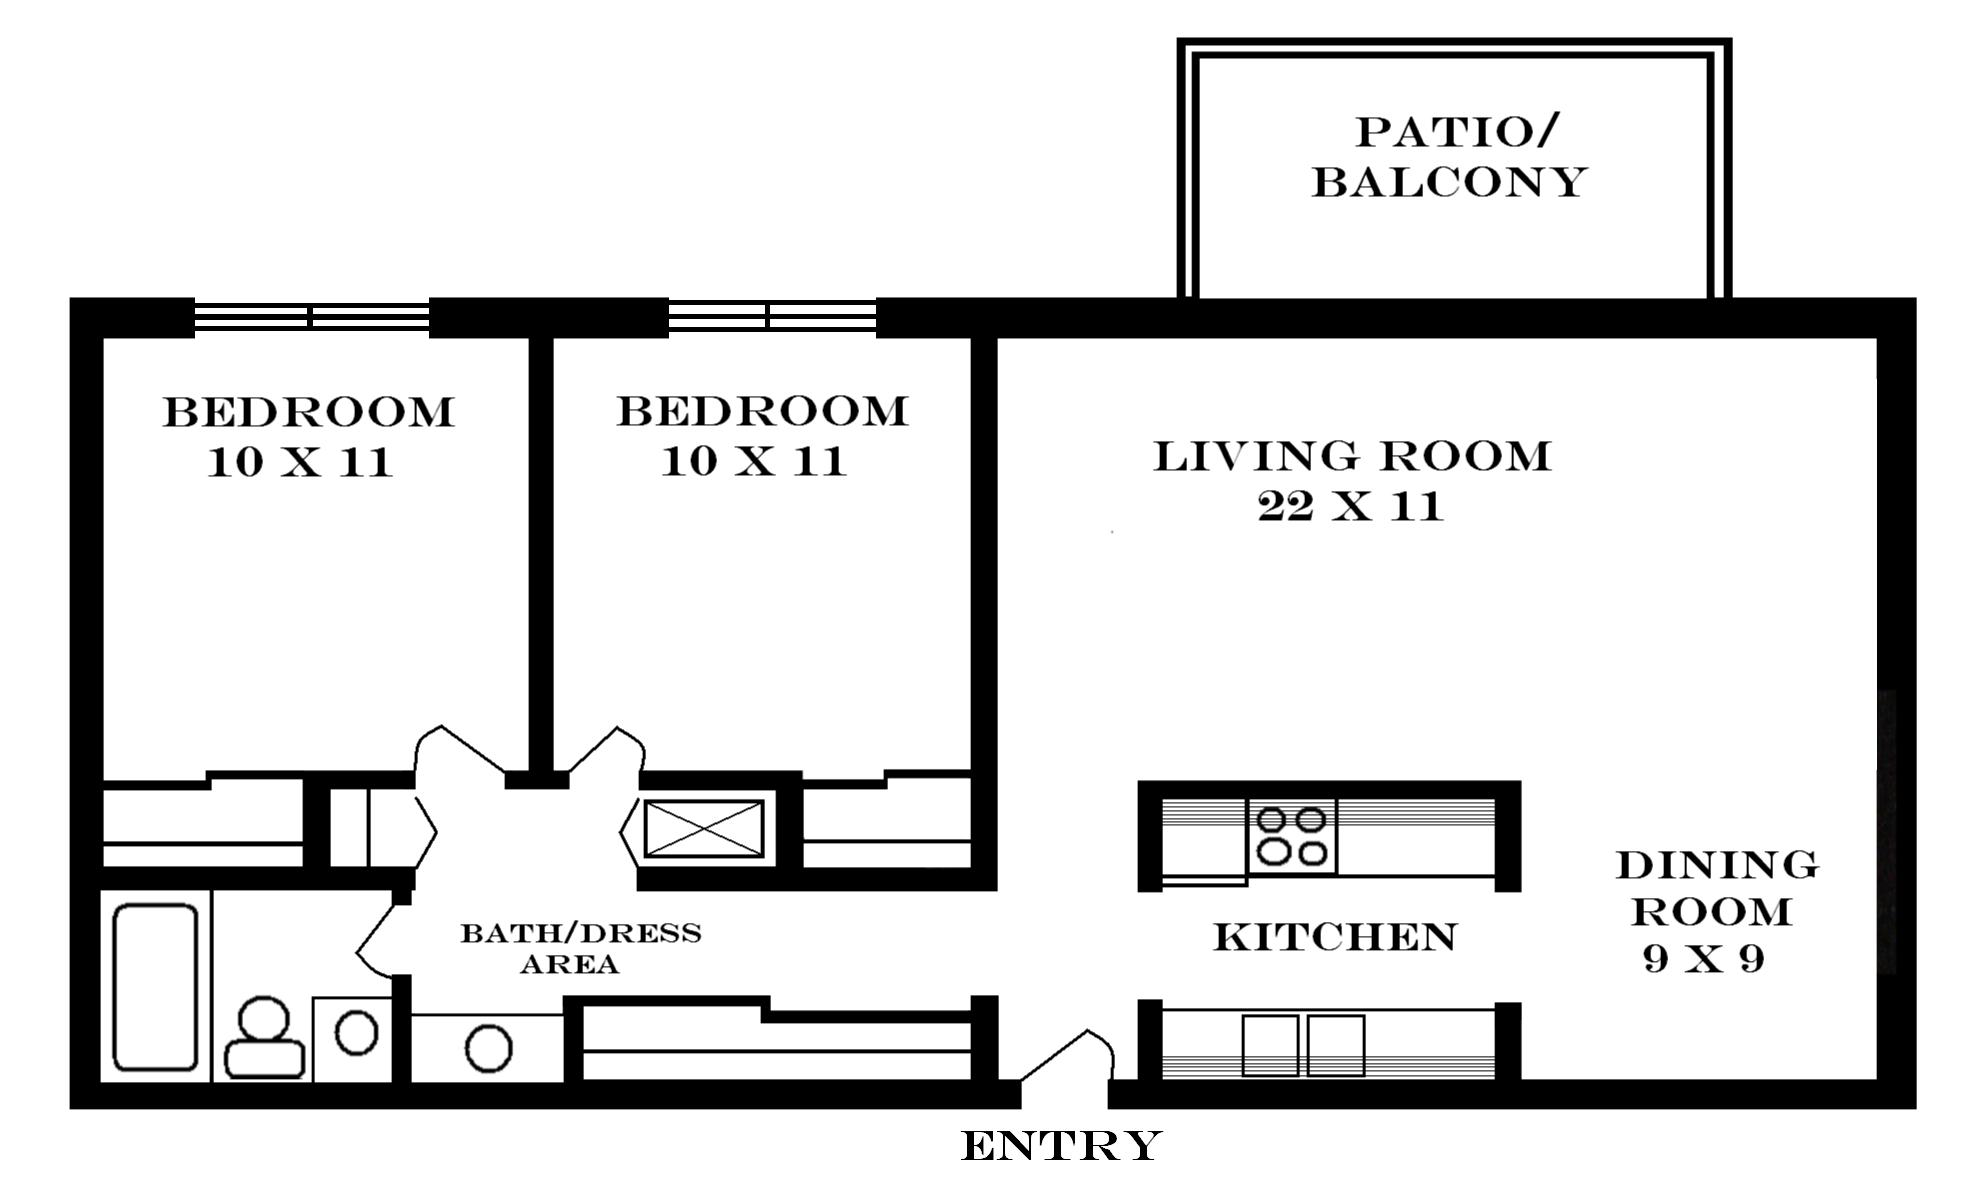 Floor Plan Shelbyville Indiana as well Doc M Shower Room Pack Additional Wc And Large Washbasin p1292 further 7 Ideal Small Houses Floor Plans Under 1000 Square Feet likewise Pool House Floor Plans furthermore 654233 One story 3 bedroom  2 bath Southern Country Farmhouse. on 4 bedroom floor plans